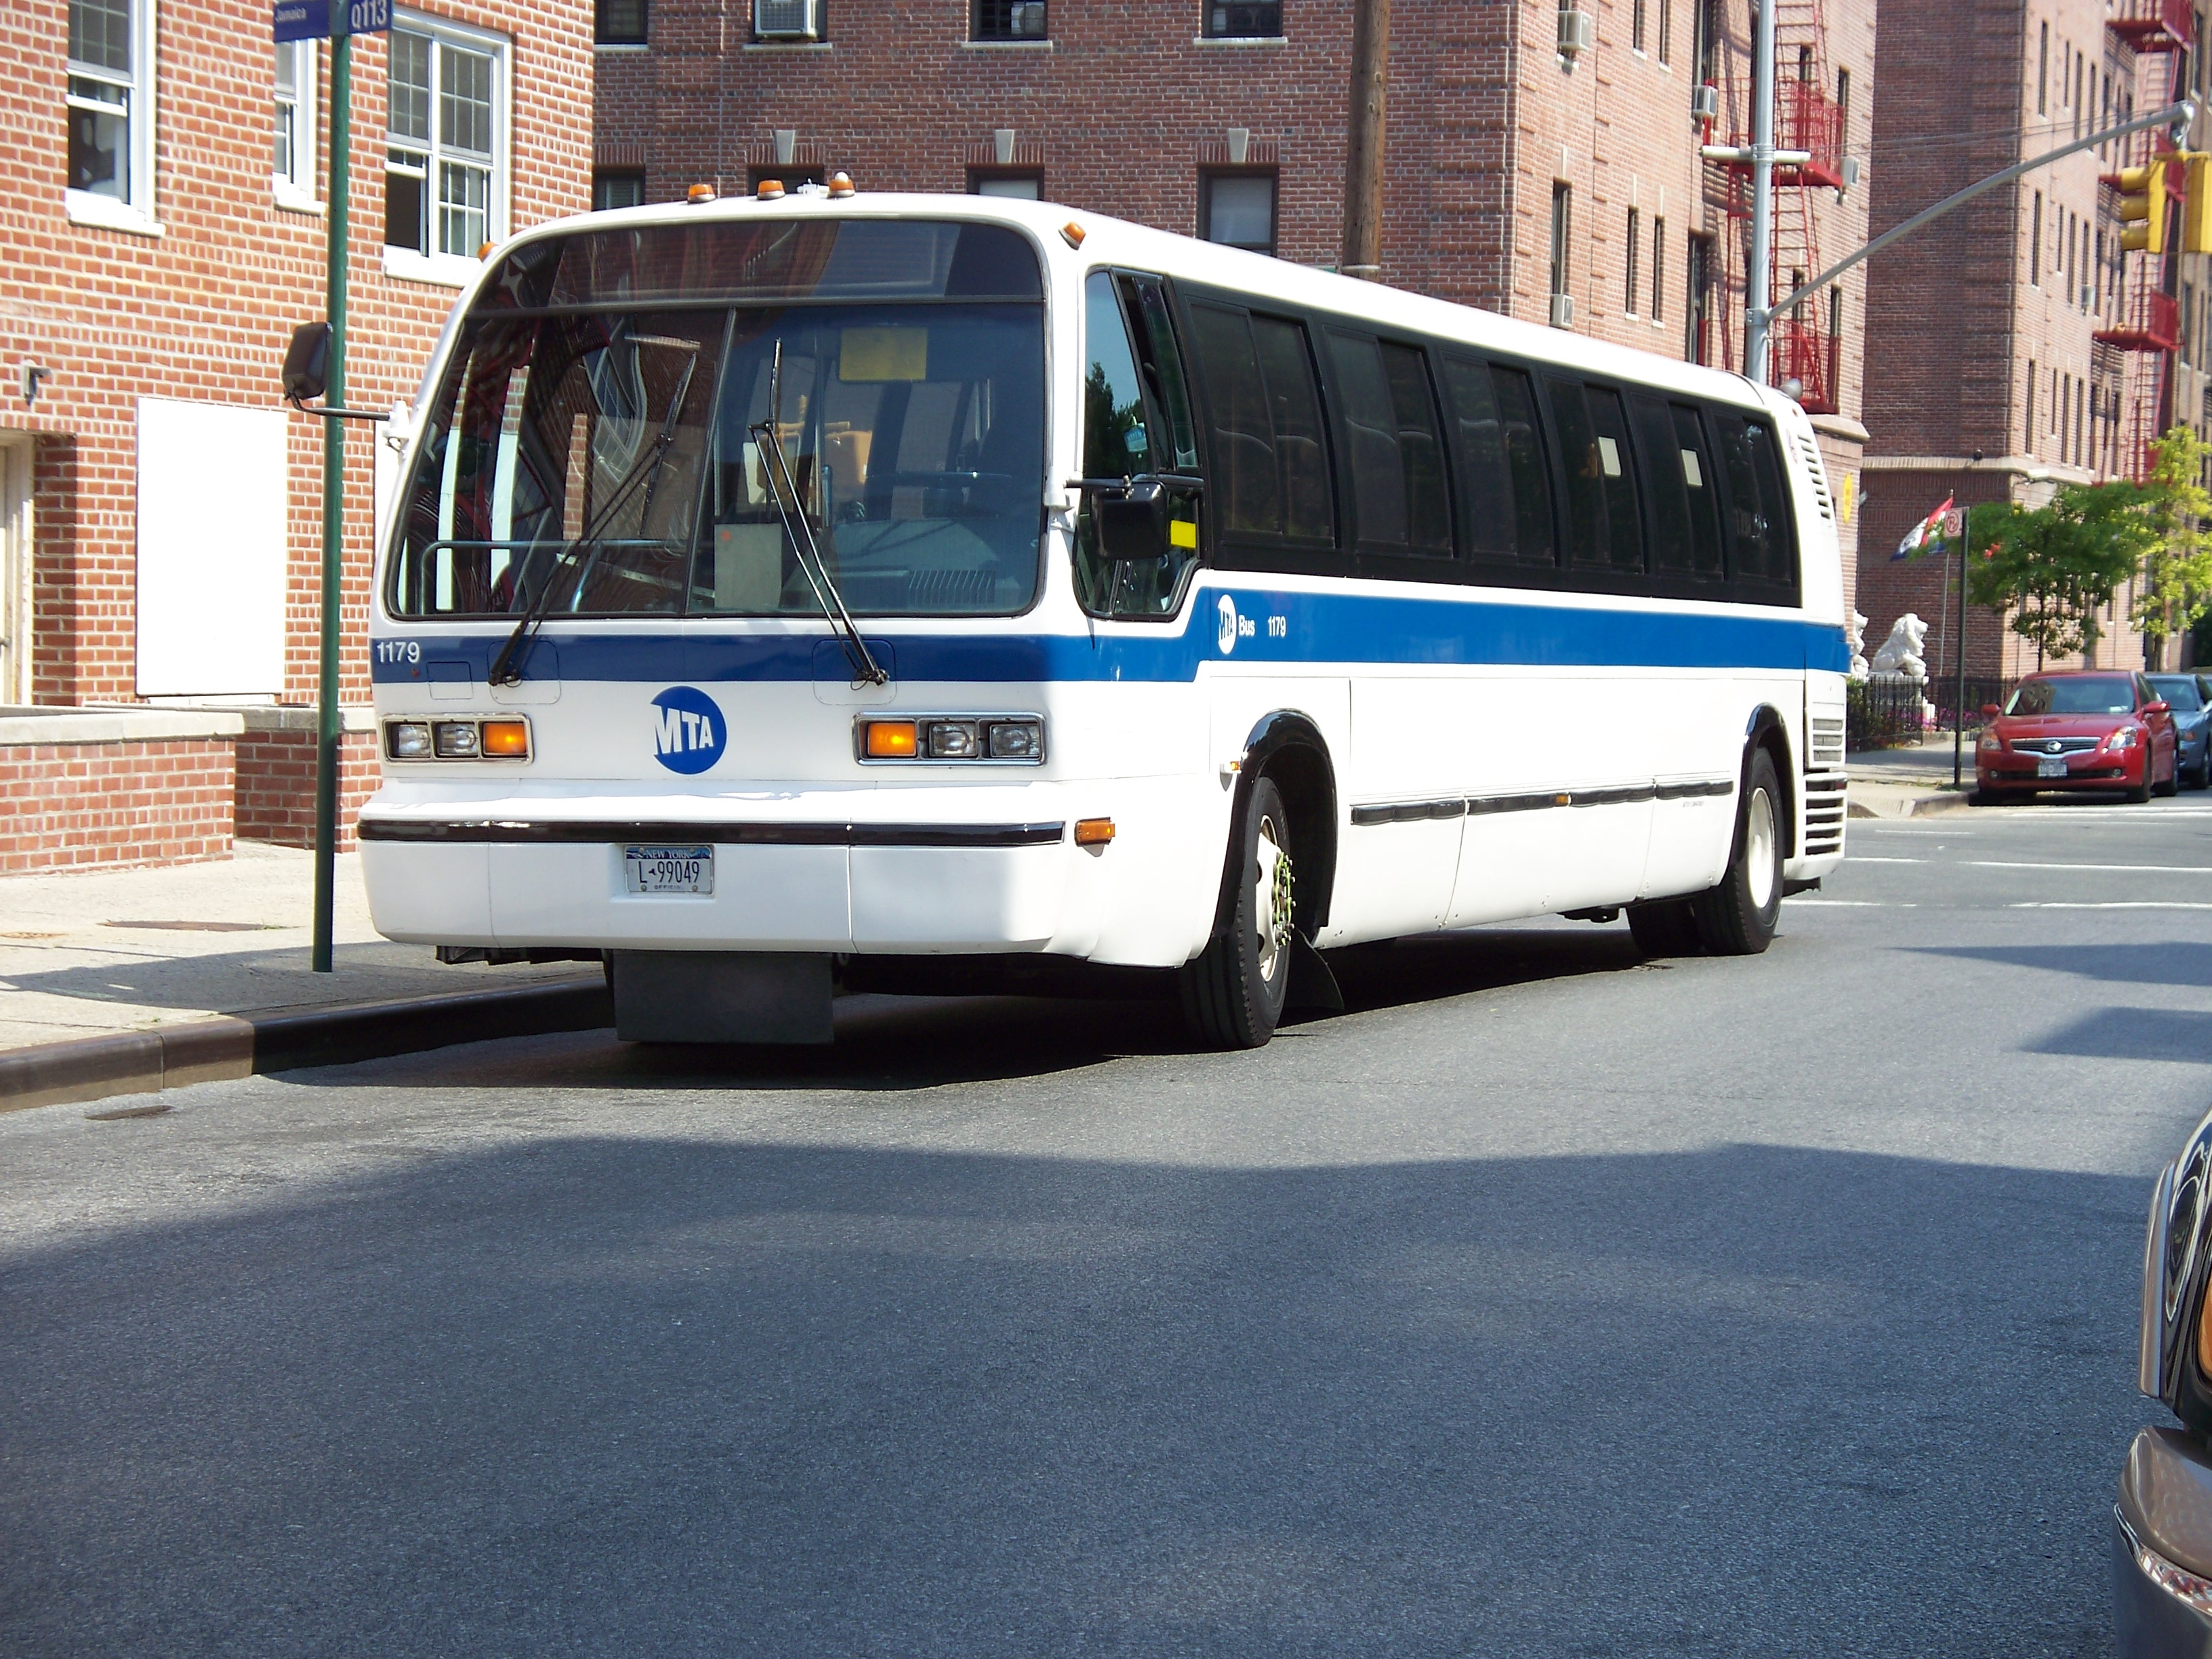 New Yourk City Busrs